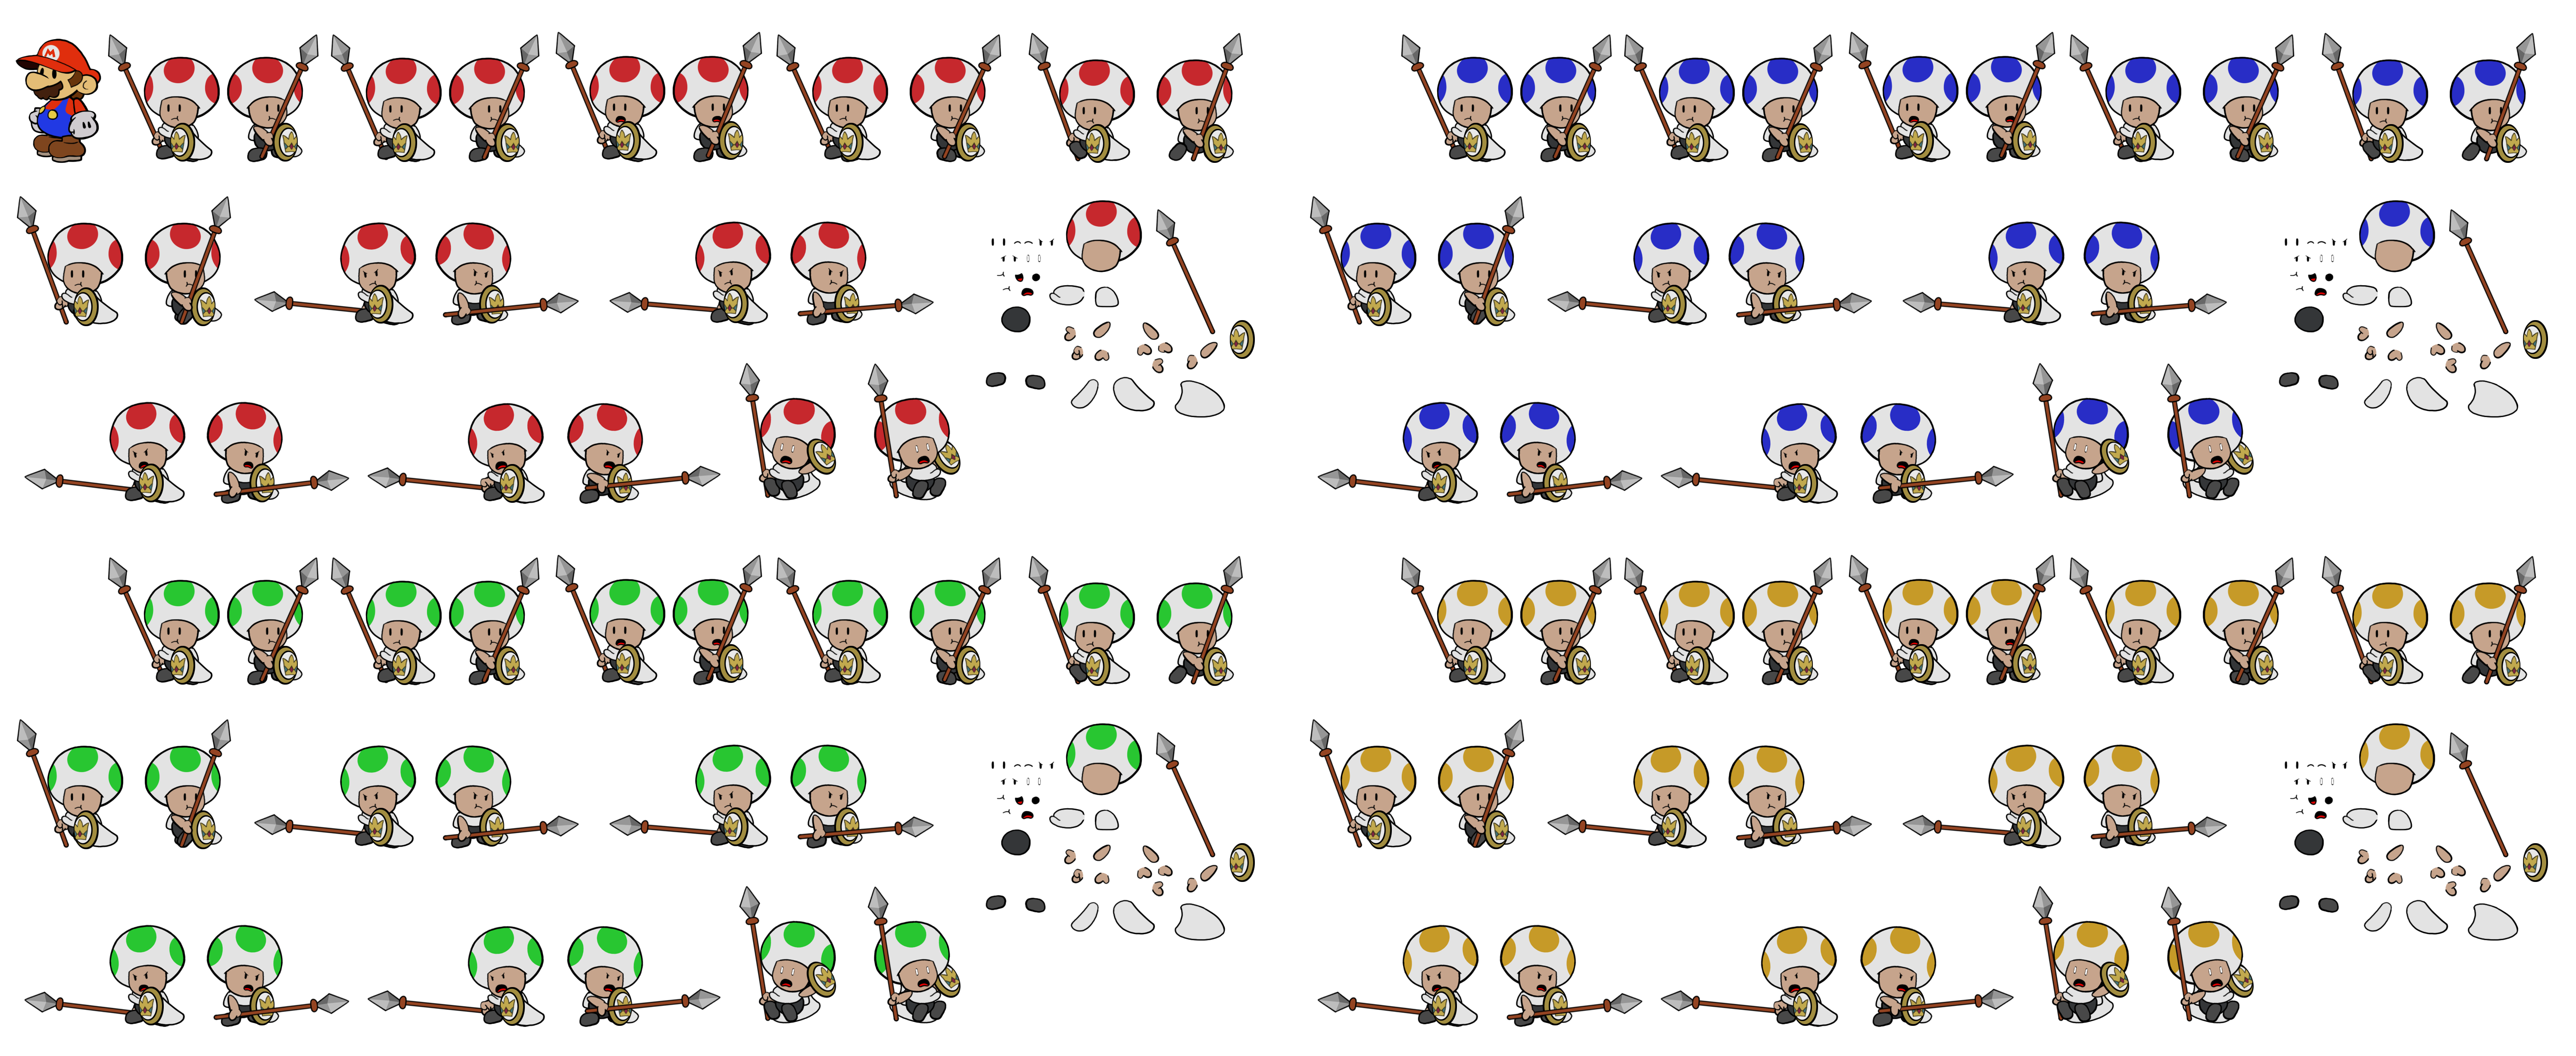 Paper Mario Customs - Guard Toads (Paper Mario Style)